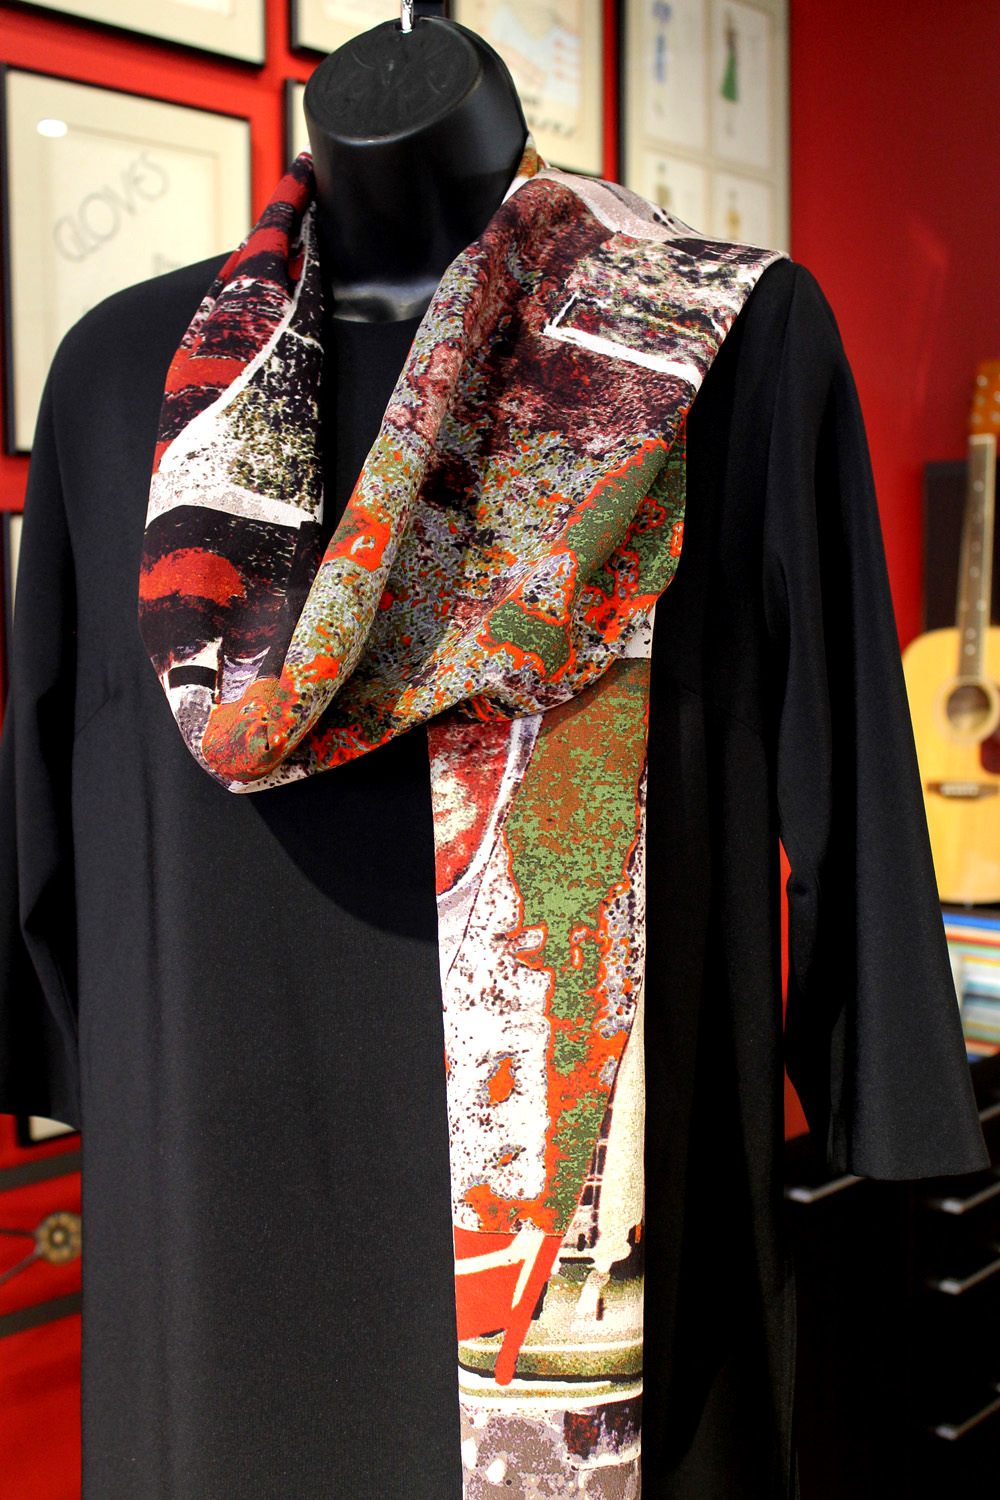 two-moons-metallic-colorful-scarf-from-original-collage-art-by-designer-judi-magier-img_4008-1500px.jpg